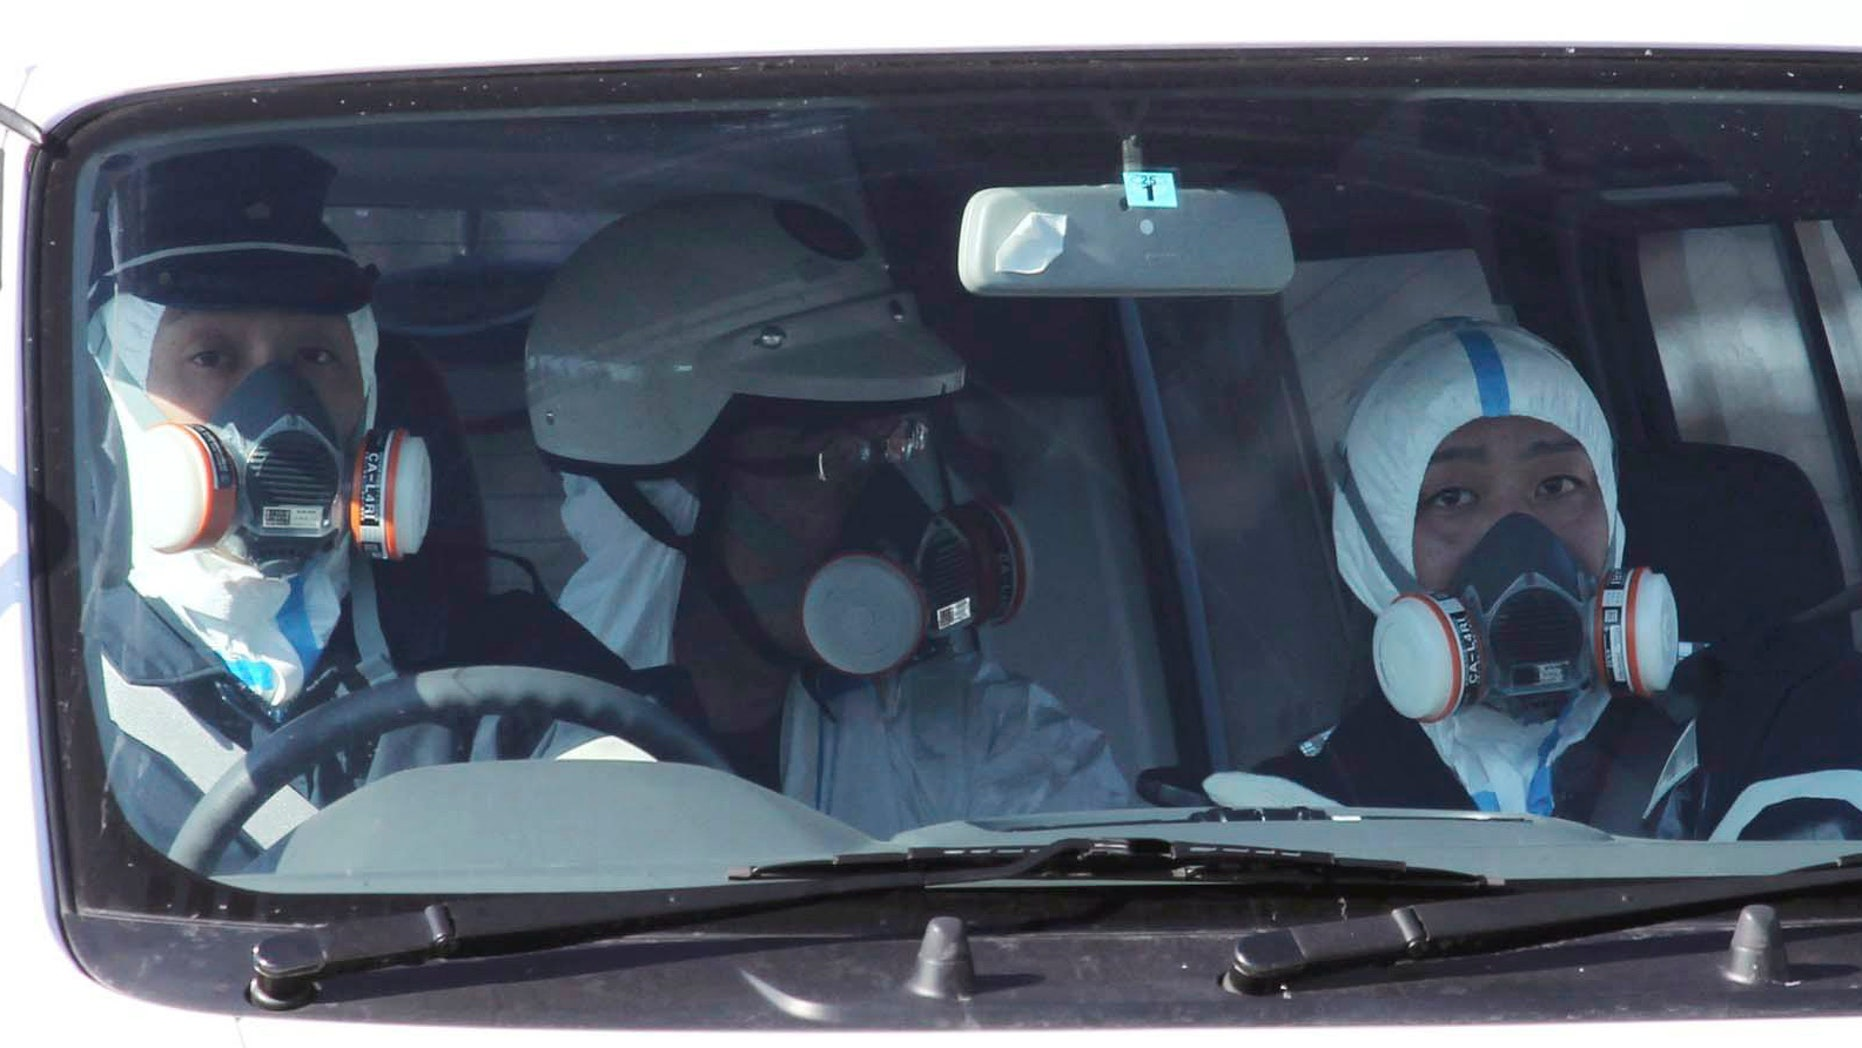 March 12: Police officers wearing gas masks patrol in the area of the Fukushima power plant's Unit 1 in Okumamachi, Fukushima Prefecture, northern Japan, amid fears that a part of the plant could meltdown after being hit by a powerful earthquake and tsunami Friday. (AP/The Yomiuri Shimbun)